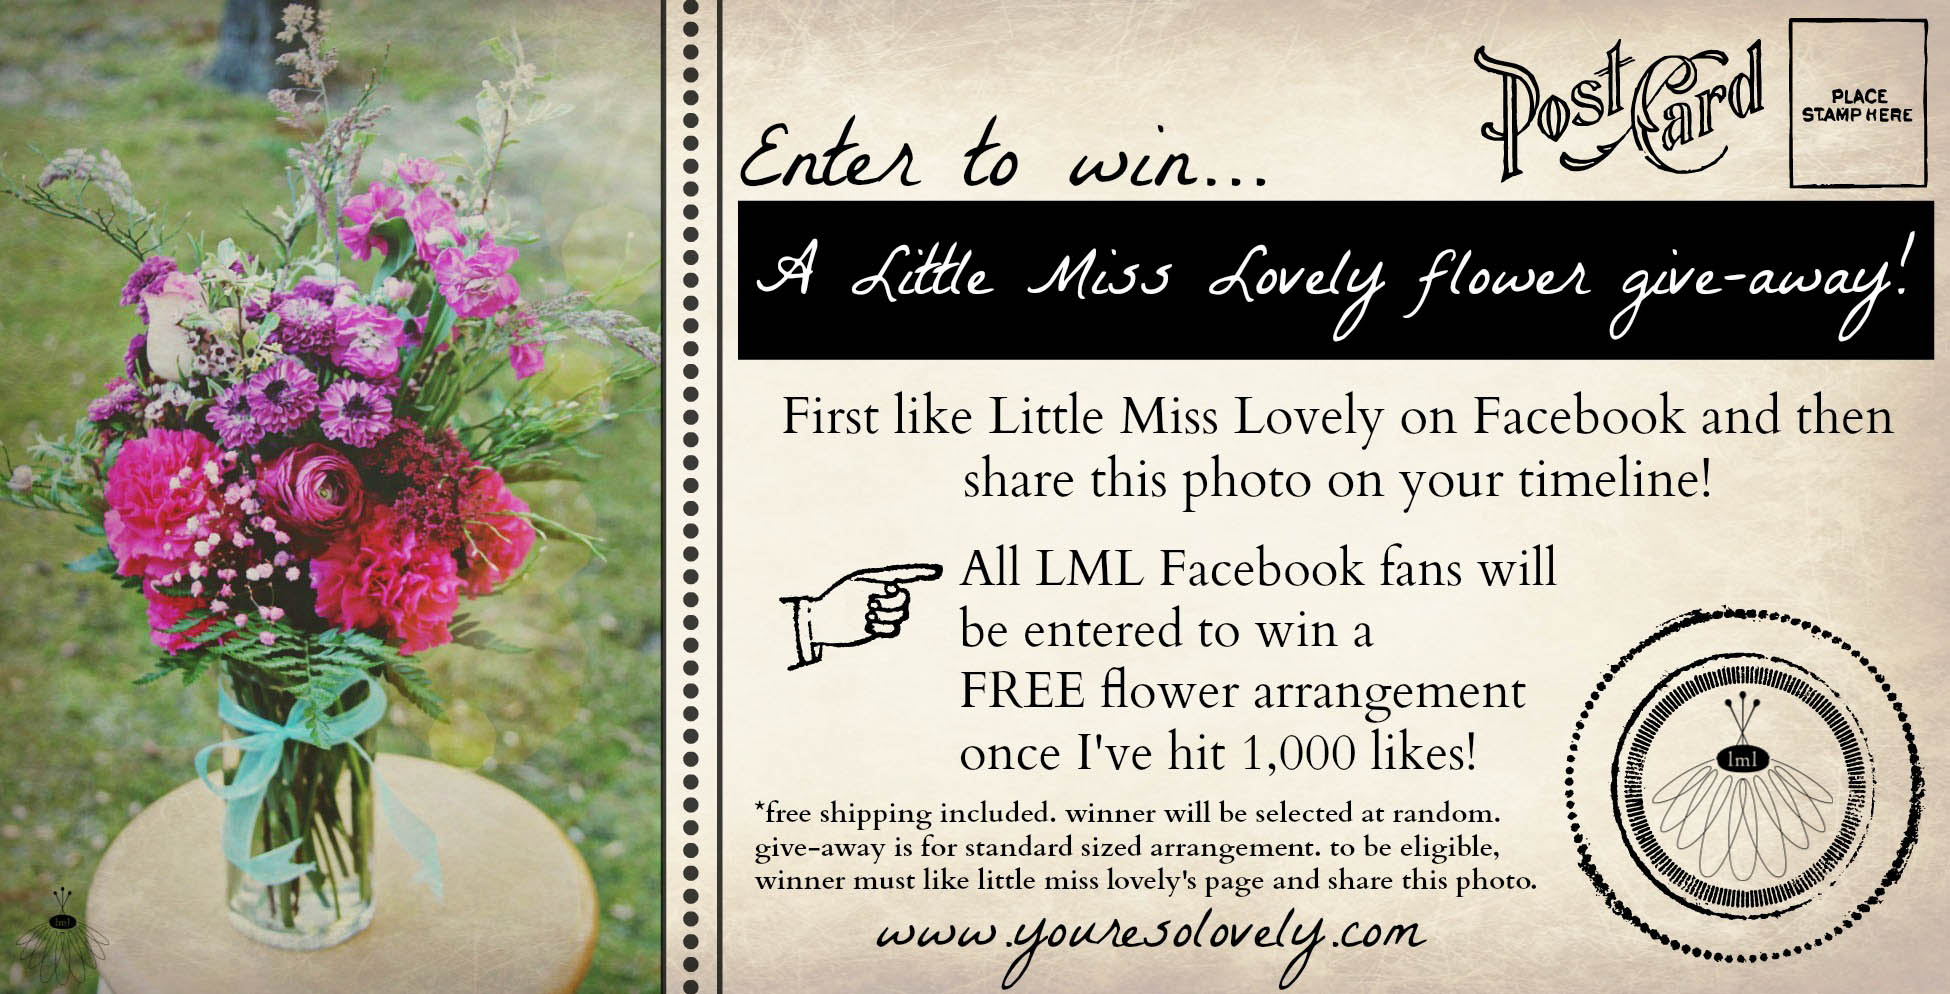 little miss lovely facebook flower giveaway